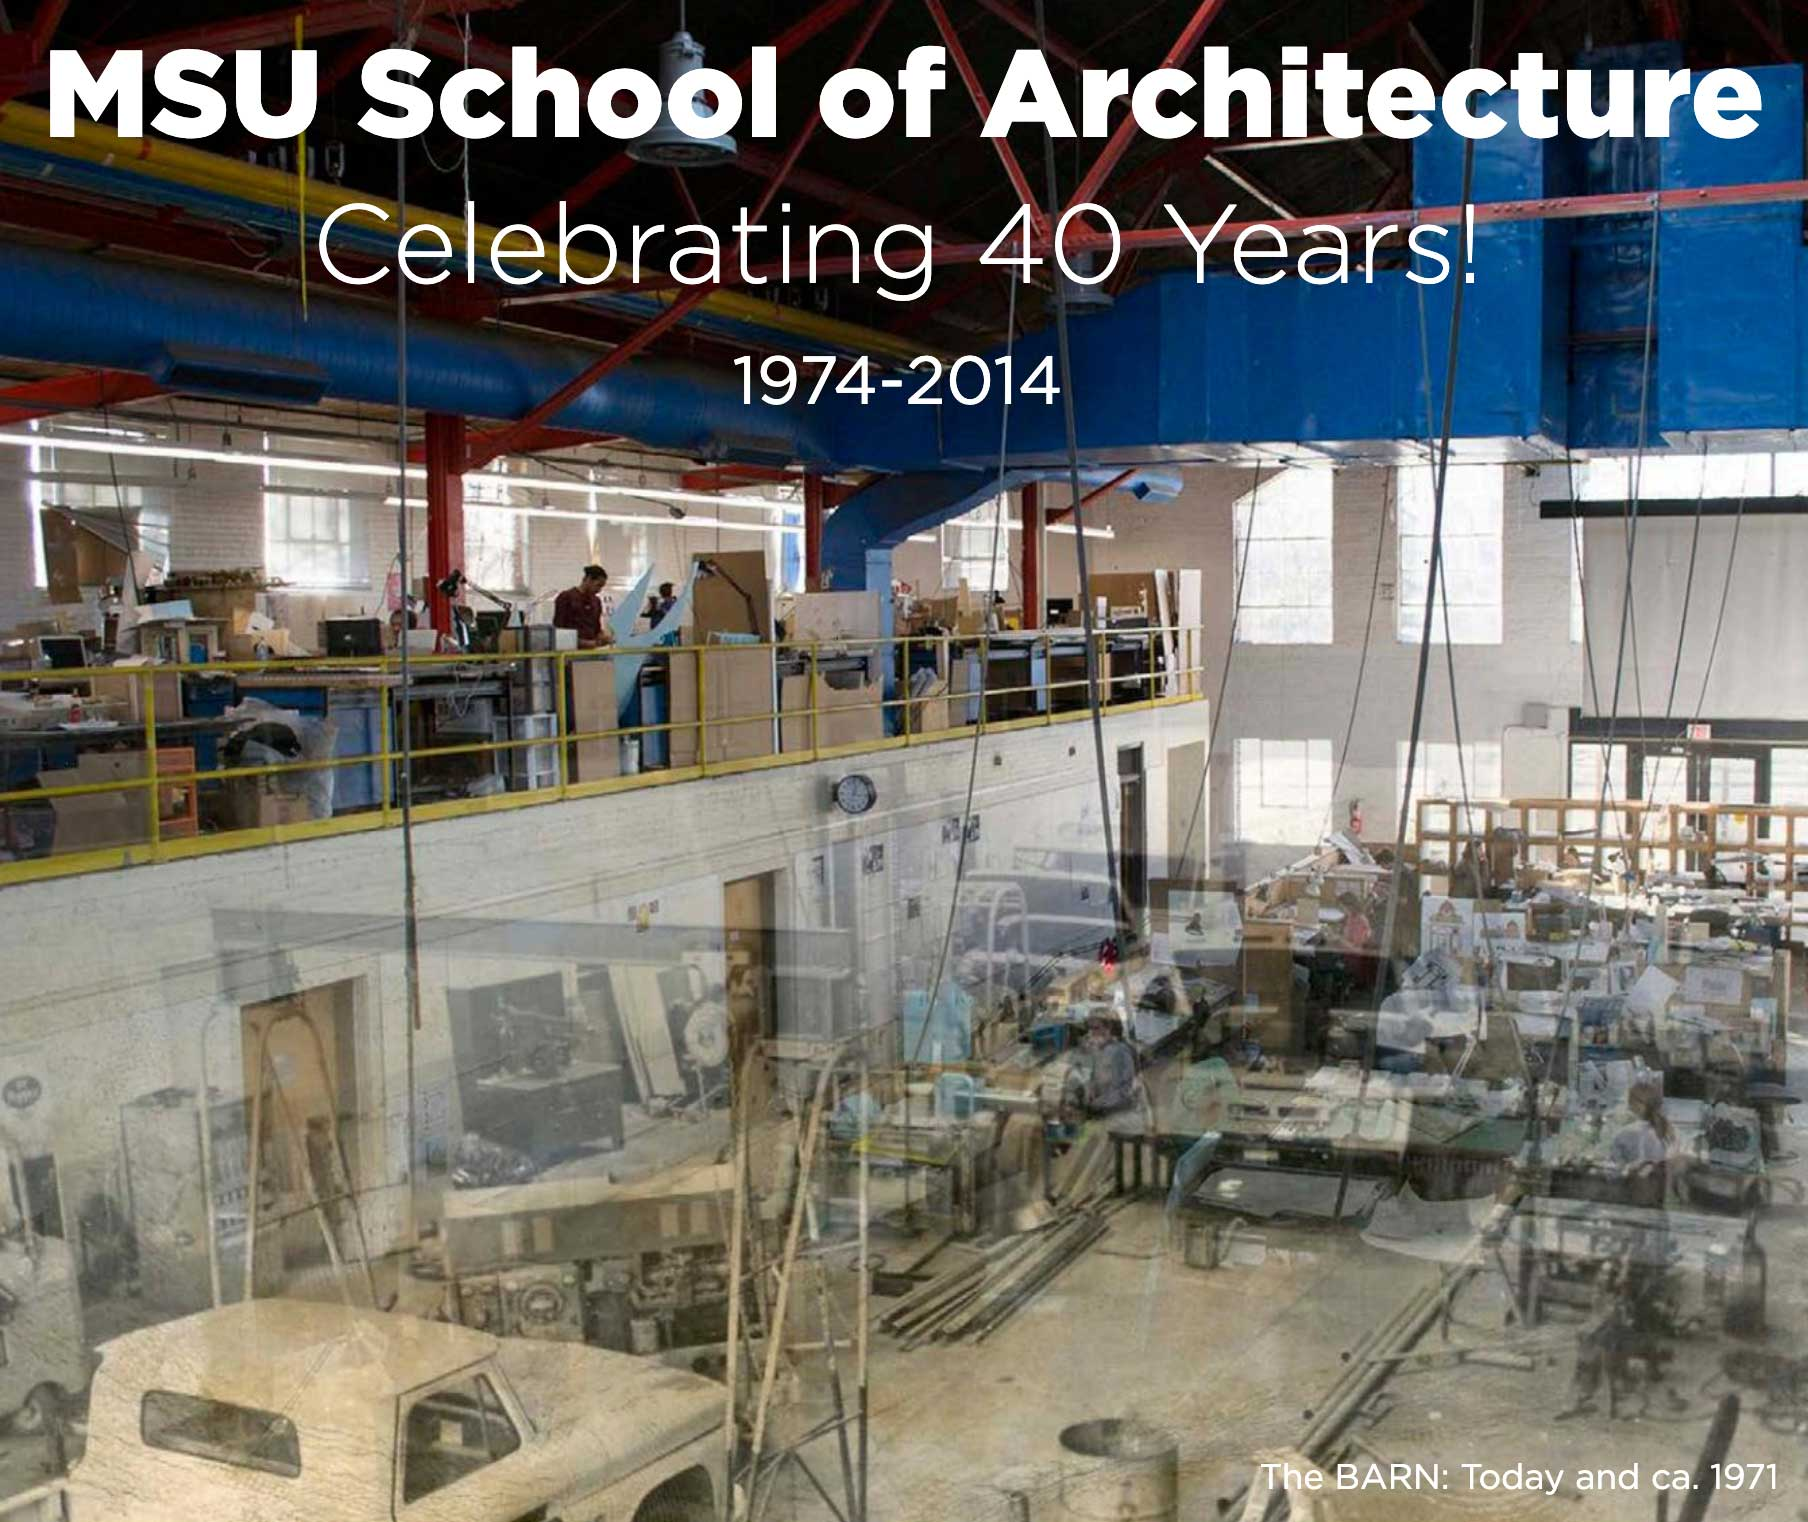 Cover image for scrapbook, MSU School of Architecture, Celebrating 40 Years